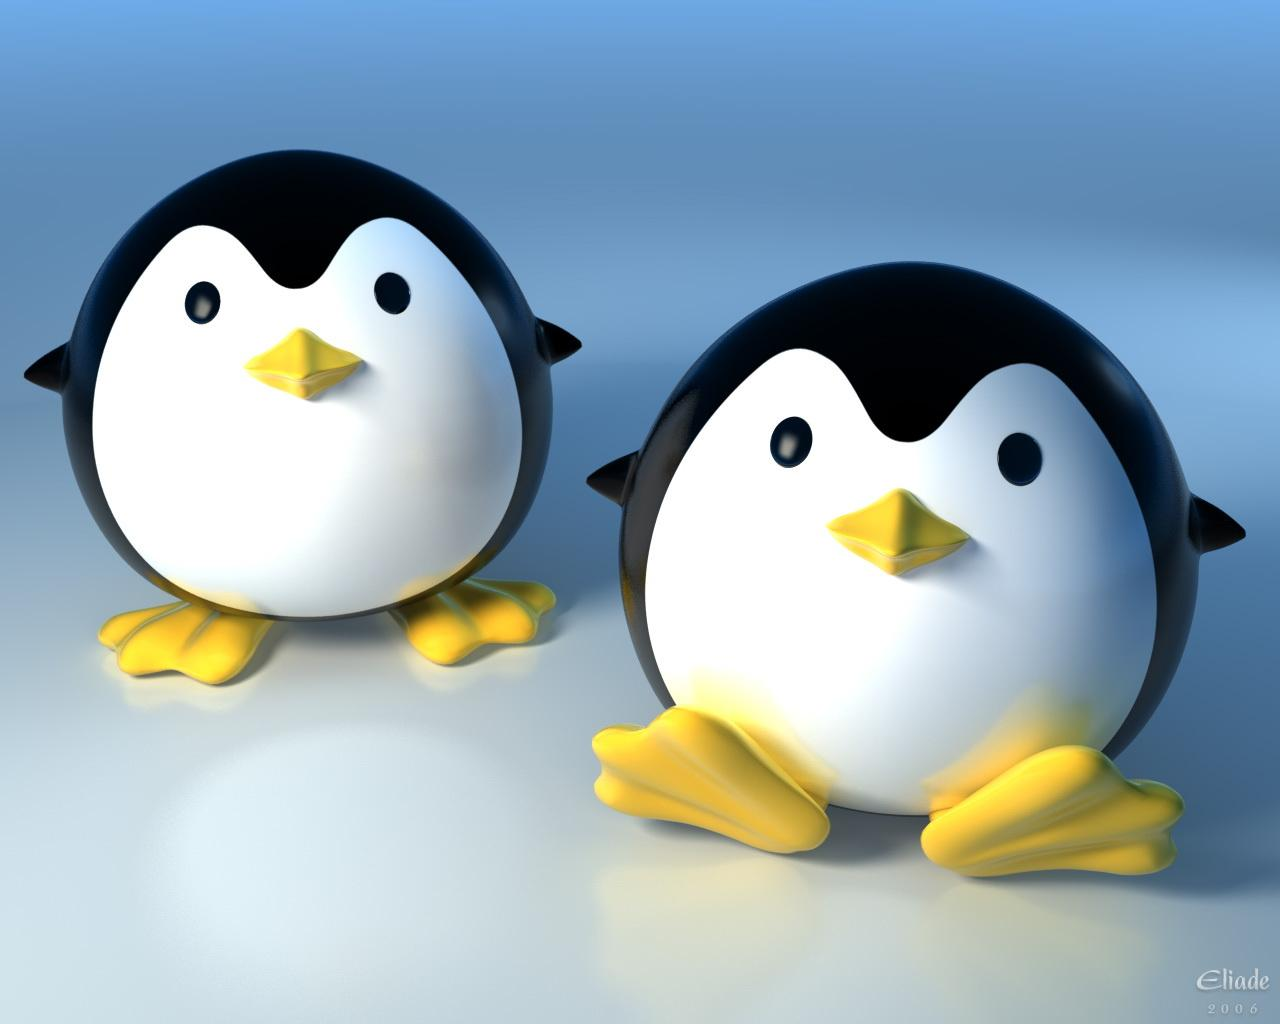 Cute Penguins Cartoon 3D Animated Wallpaper HD #3186 Wallpaper